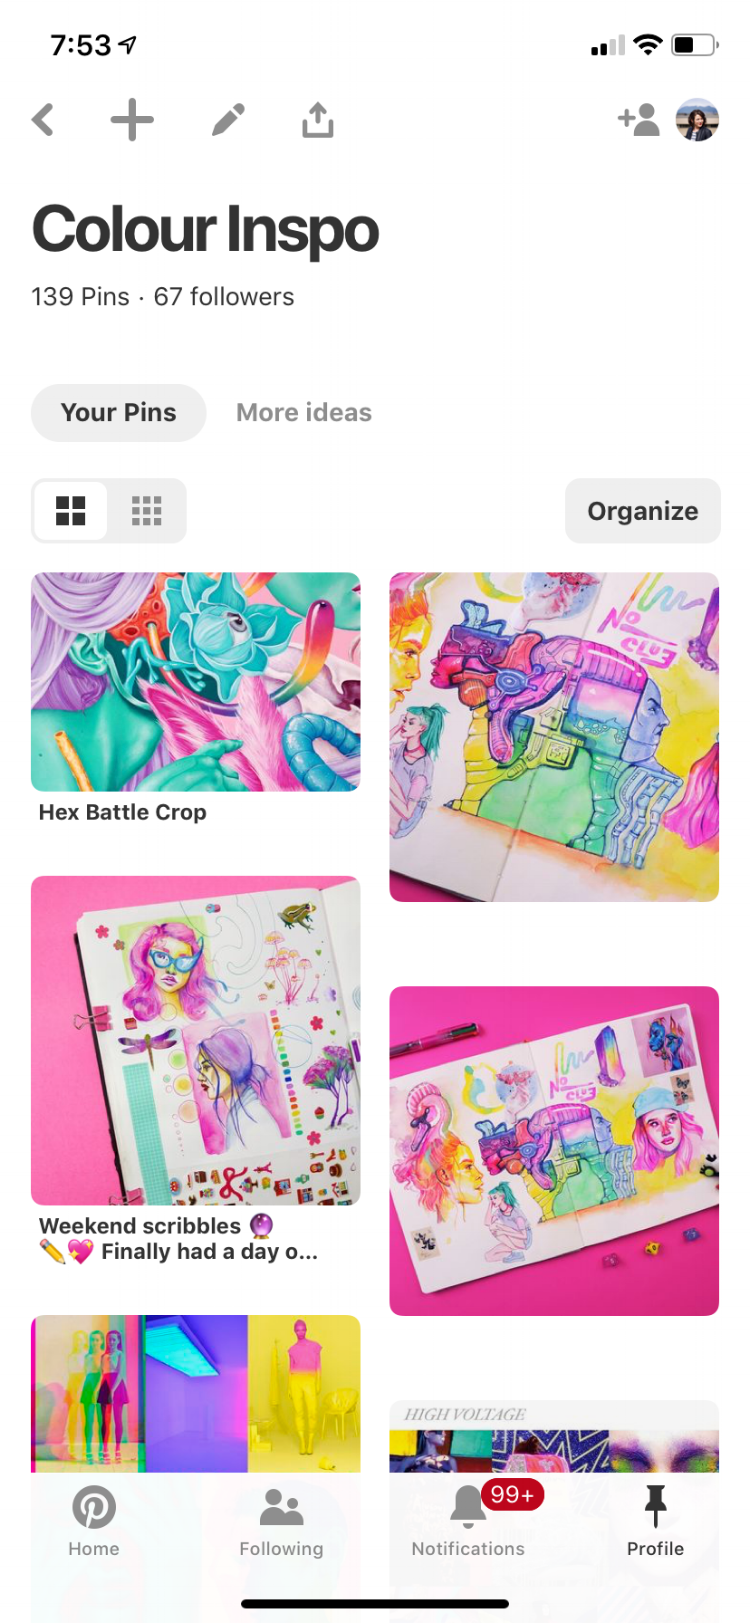 This is a screenshot of my own    colour inspo board on Pinterest   , featuring many works by    Zeke's Lunchbox    as I've been kind of obsessed with her work lately.